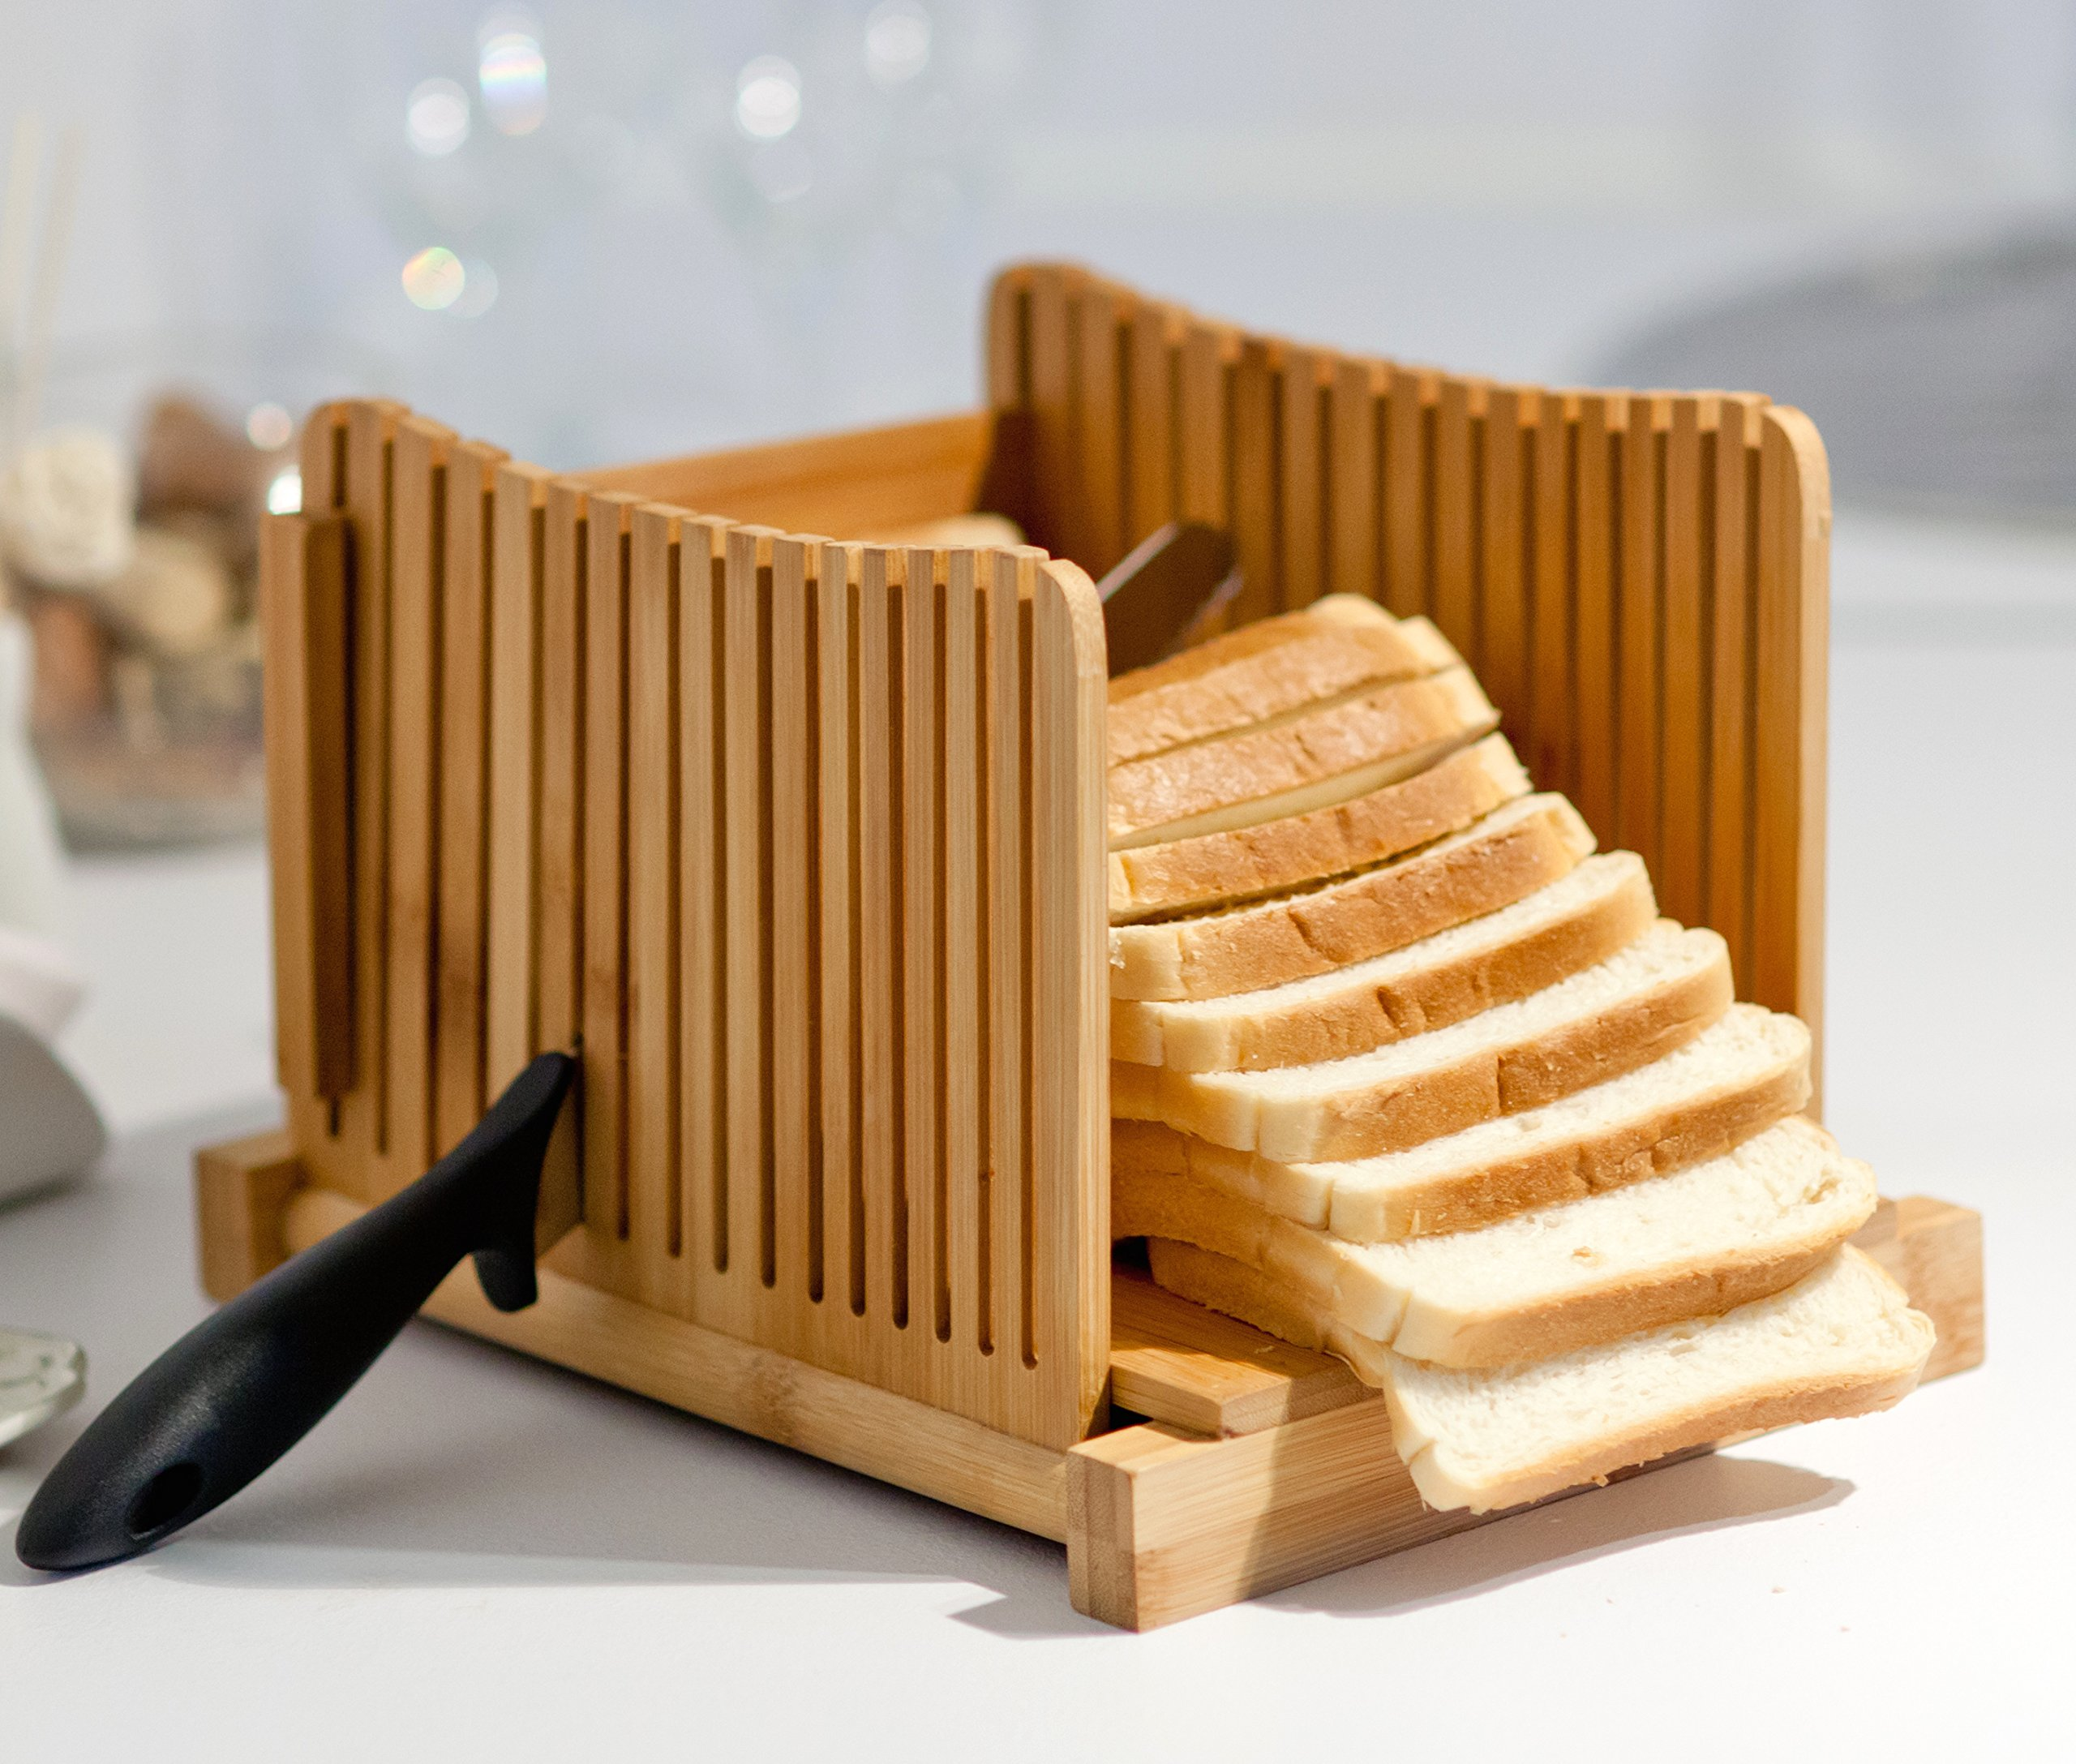 "Homemade Bread Loaf Slicer - Bamboo Wood Cutter Box with Knife Slicing Guide & Cutting Board - Adjustable Slice Size Thin Thick 1/3"" 3/8"" 1/2"" - Foldable Manual Bread Slicer Perfect for Bread Machine"